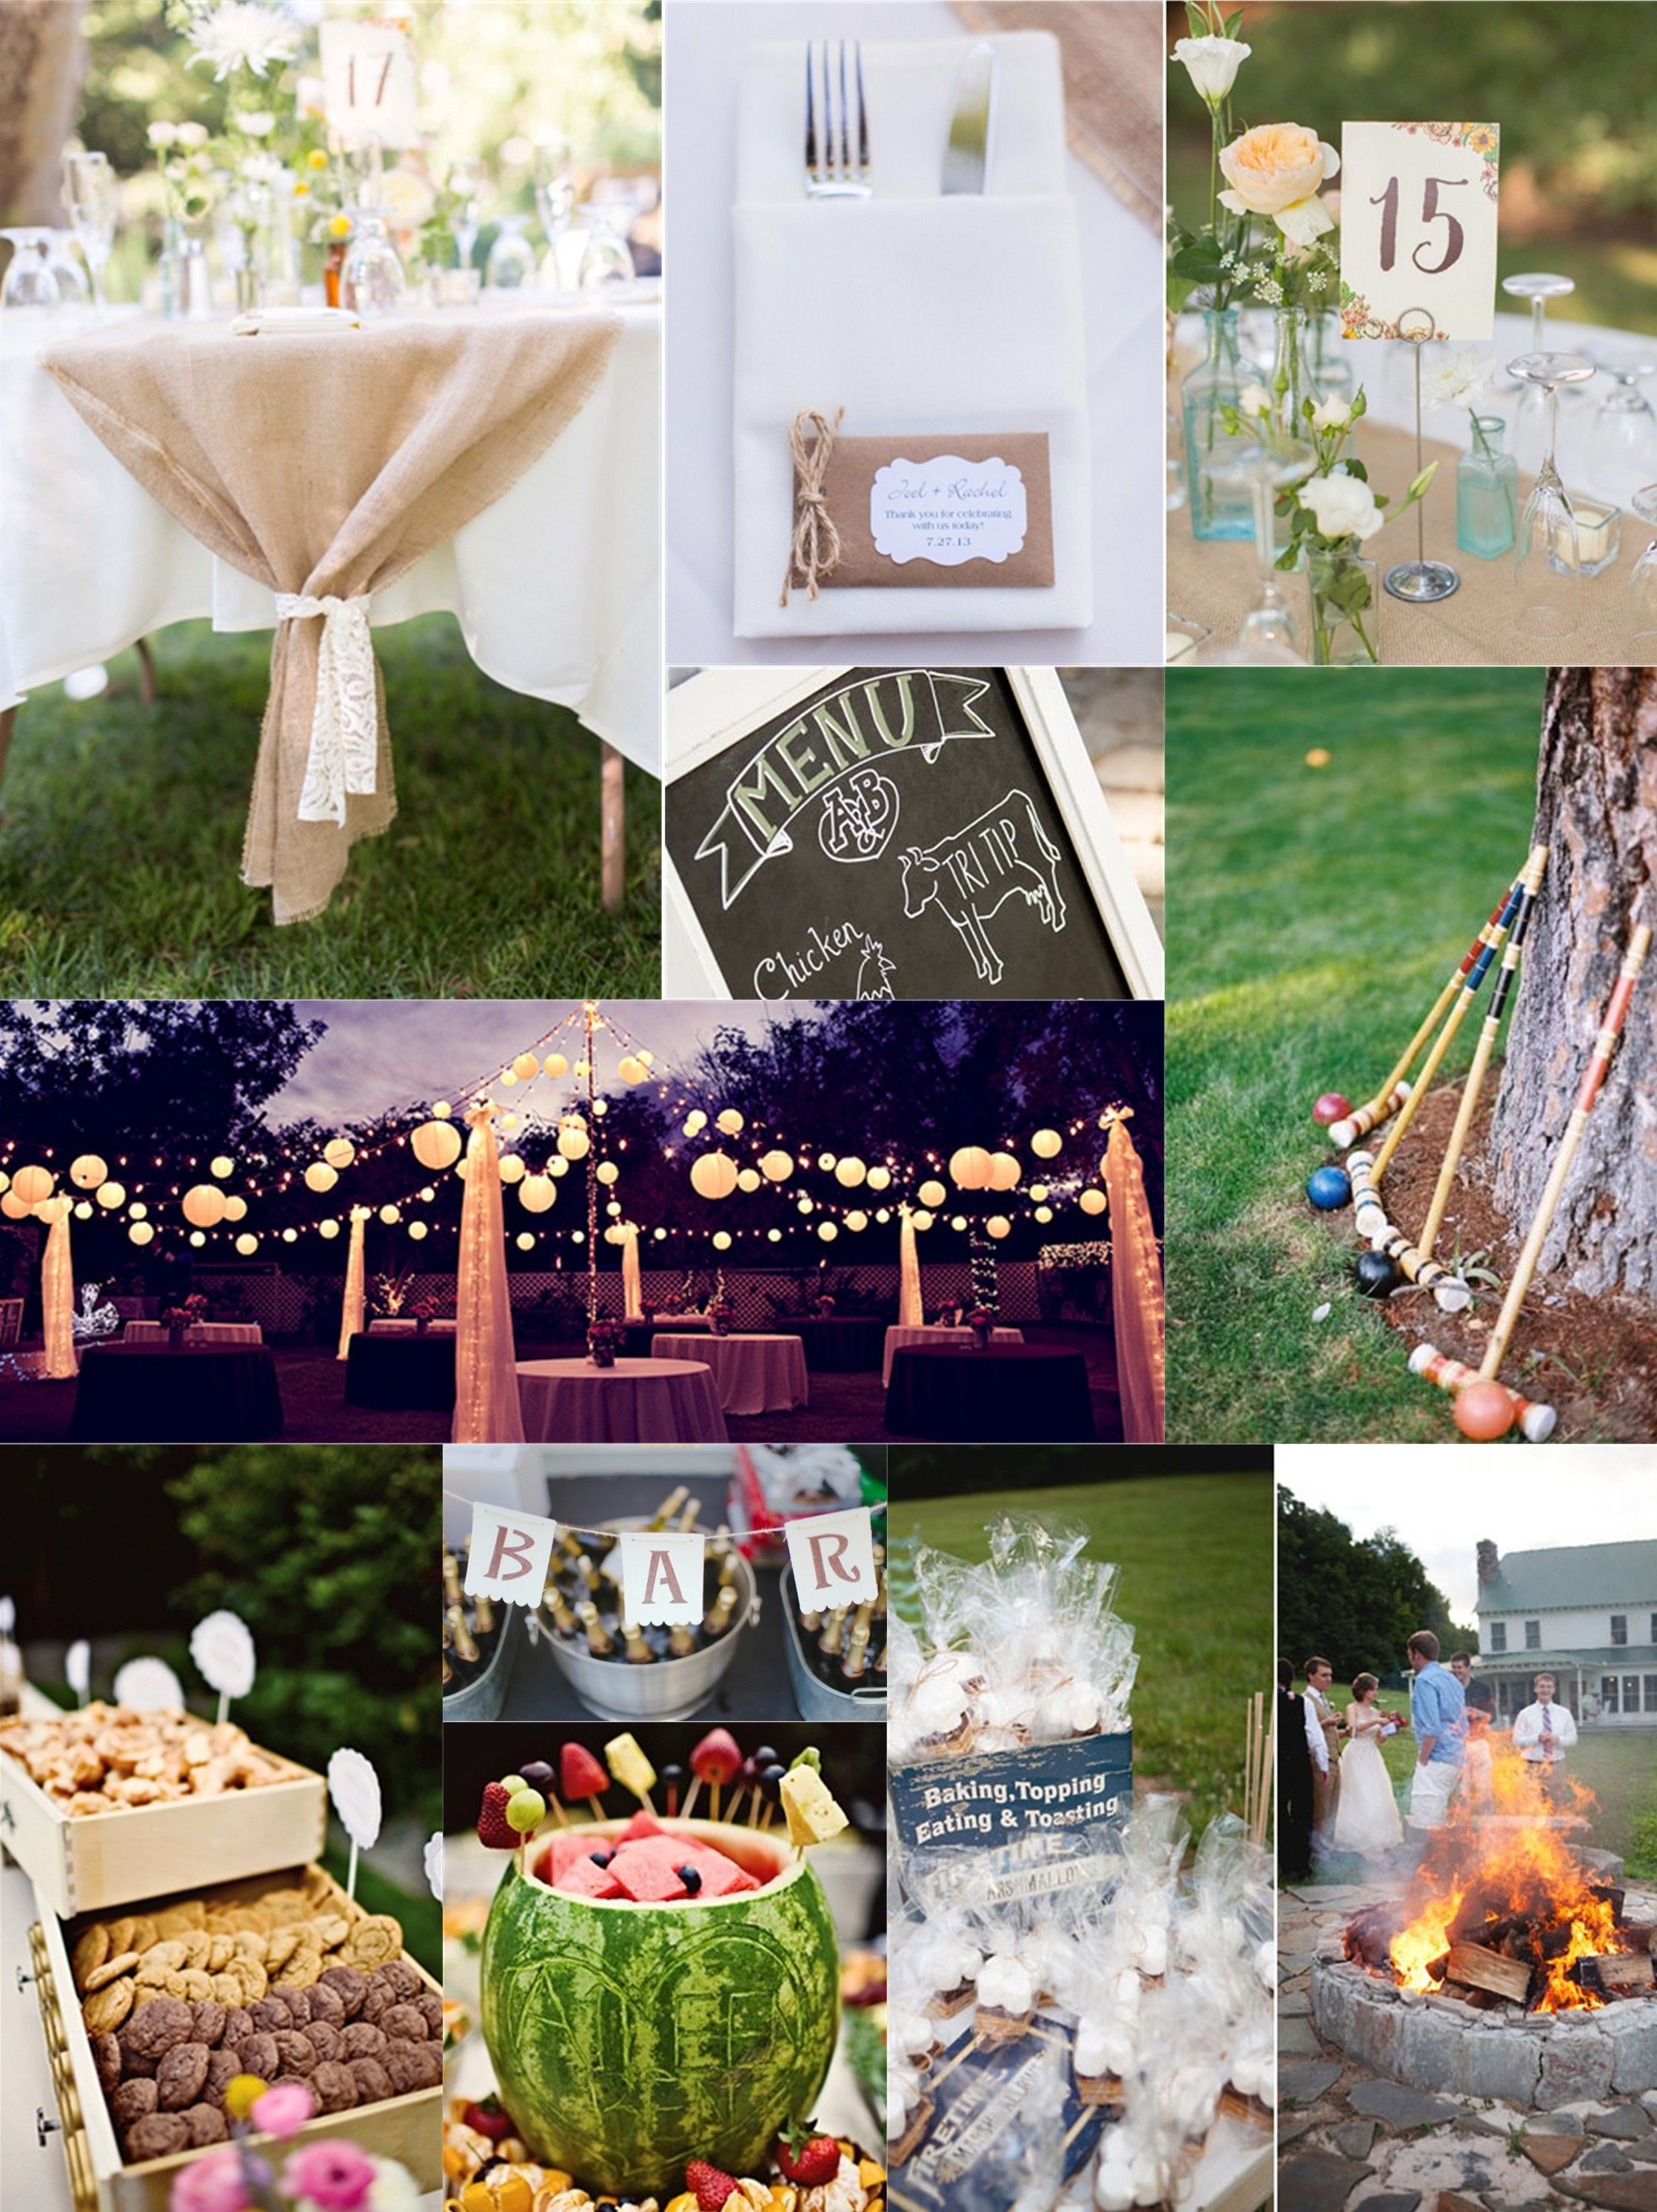 Essential Guide to a Backyard Wedding on a Budget | Backyard bbq wedding,  Backyard bbq wedding reception, Wedding backyard reception